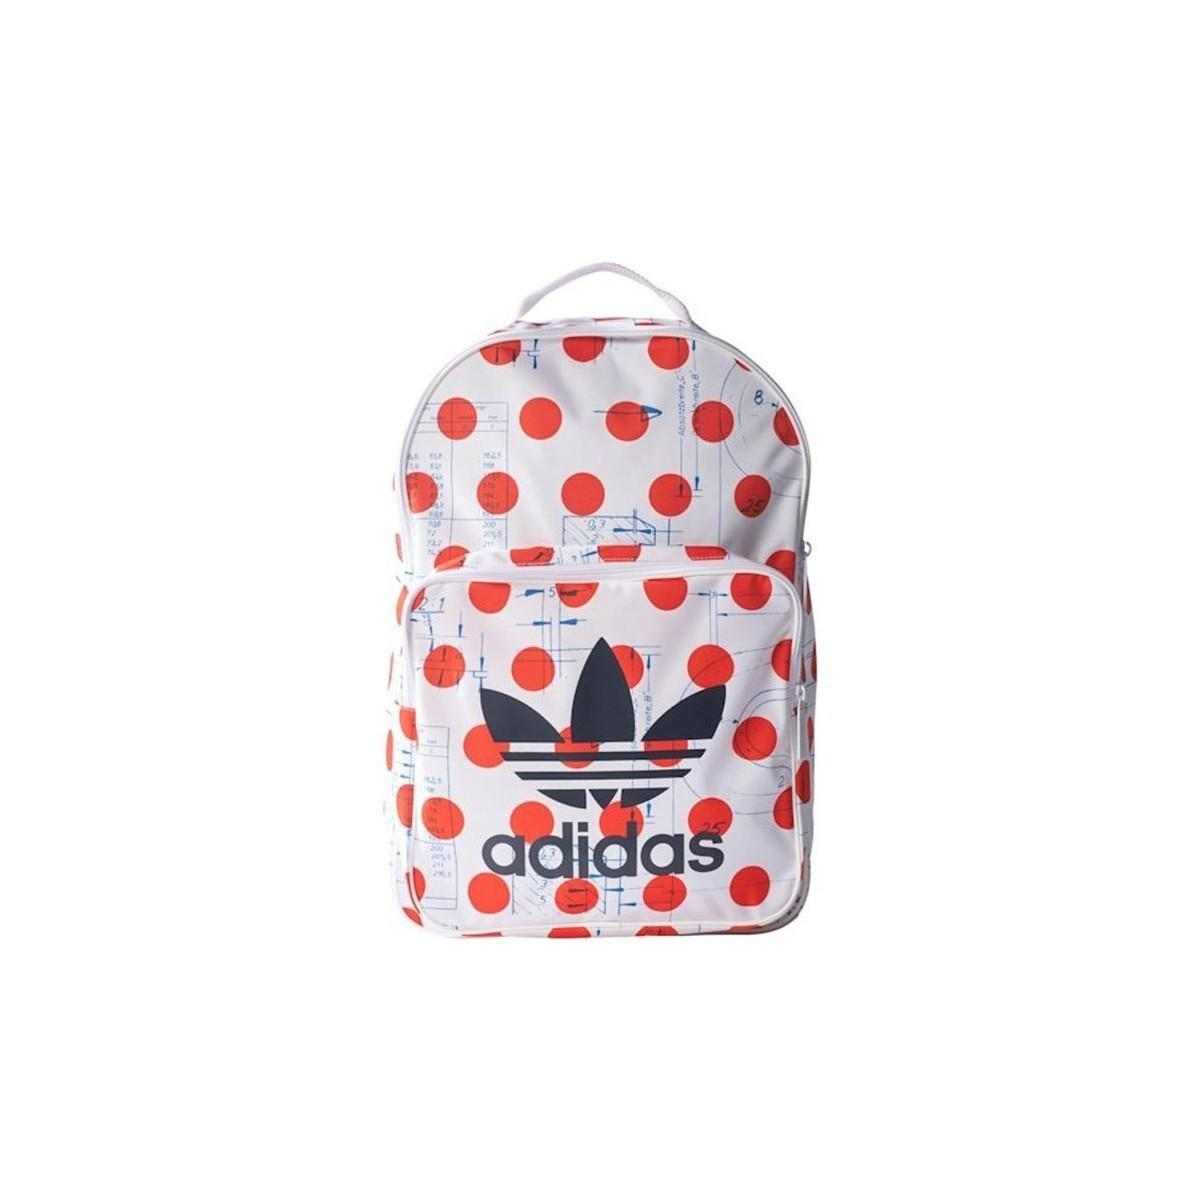 Adidas Bp Clas Dots Men s Backpack In Red in Red for Men - Lyst f84fa4e9033b9